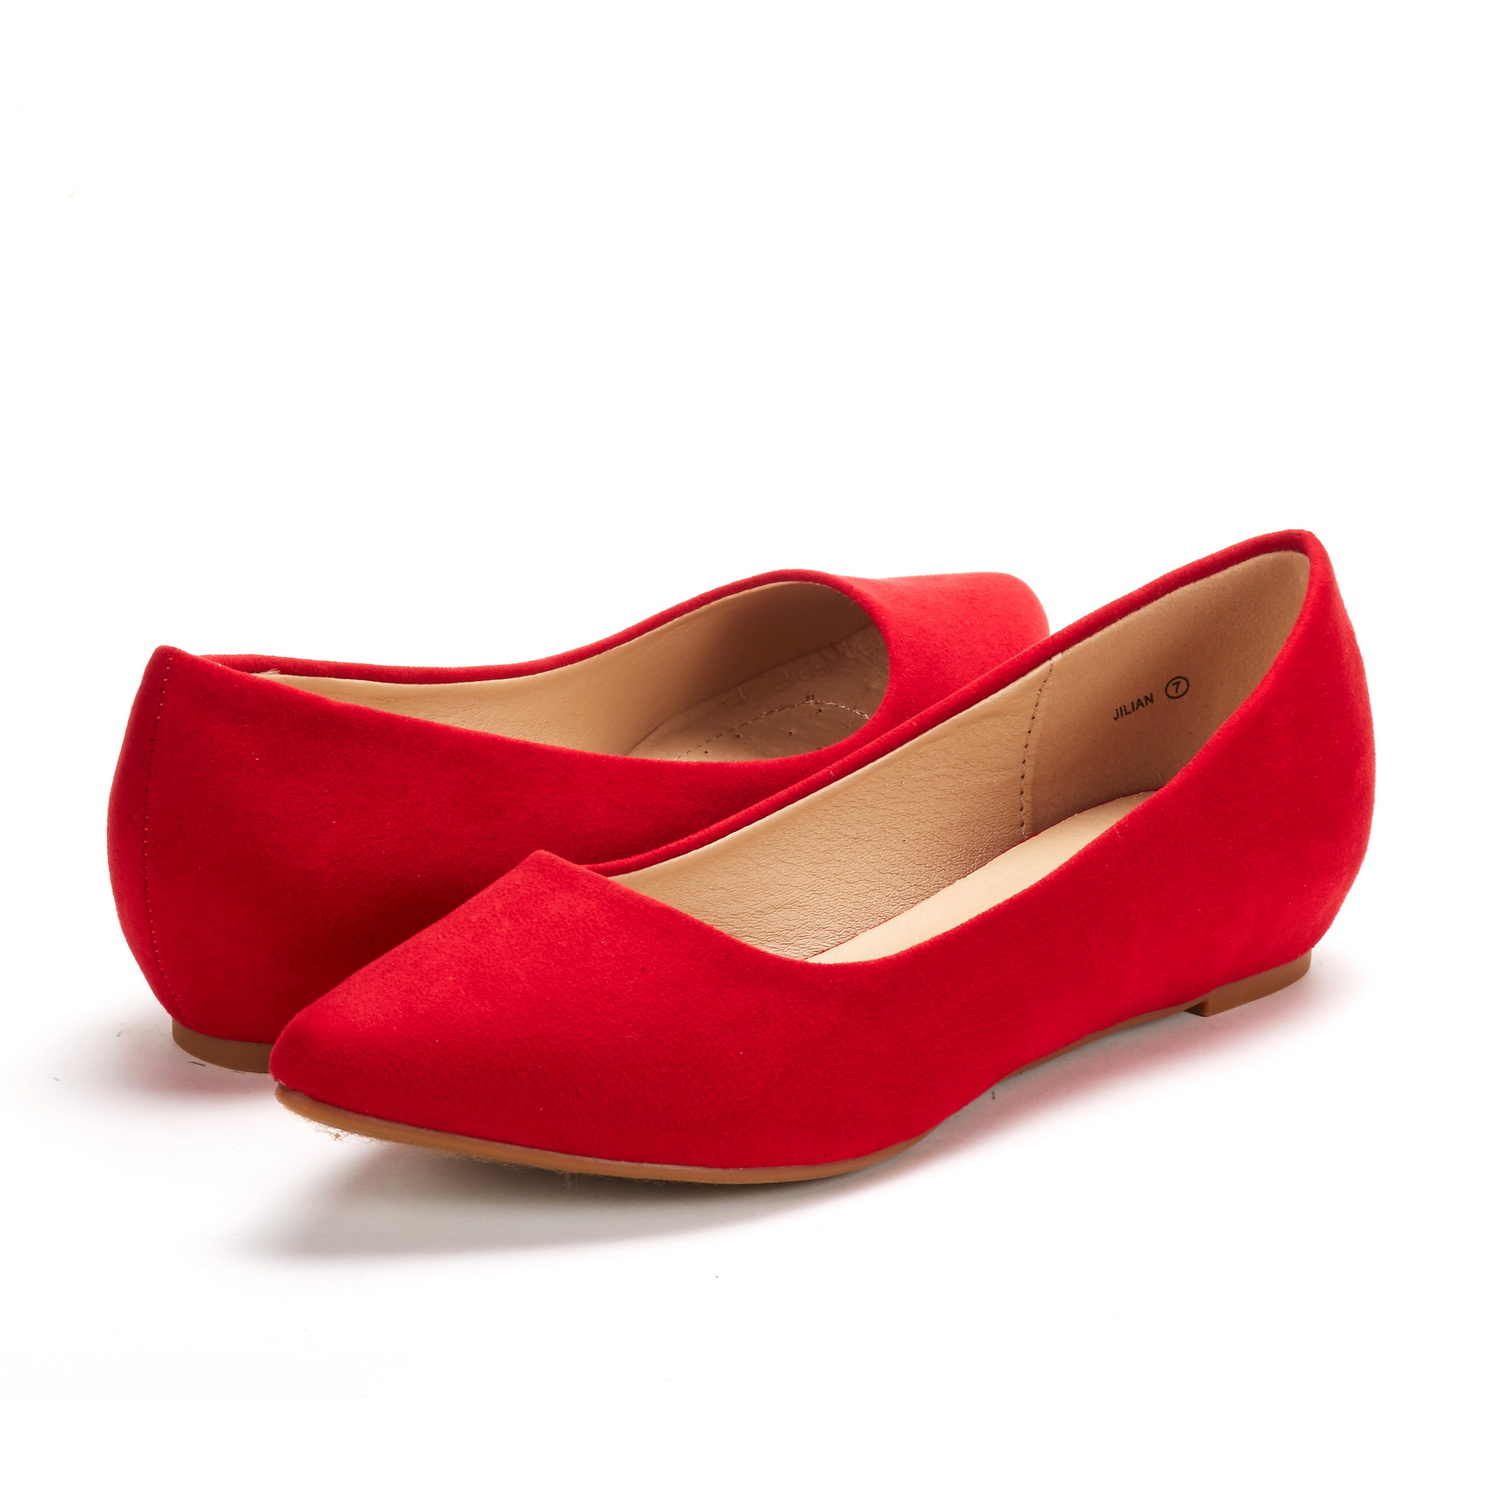 DREAM-PAIRS-Women-Low-Wedge-Flats-Ladies-Pointed-Toe-Slip-On-Comfort-Flat-Shoes thumbnail 7